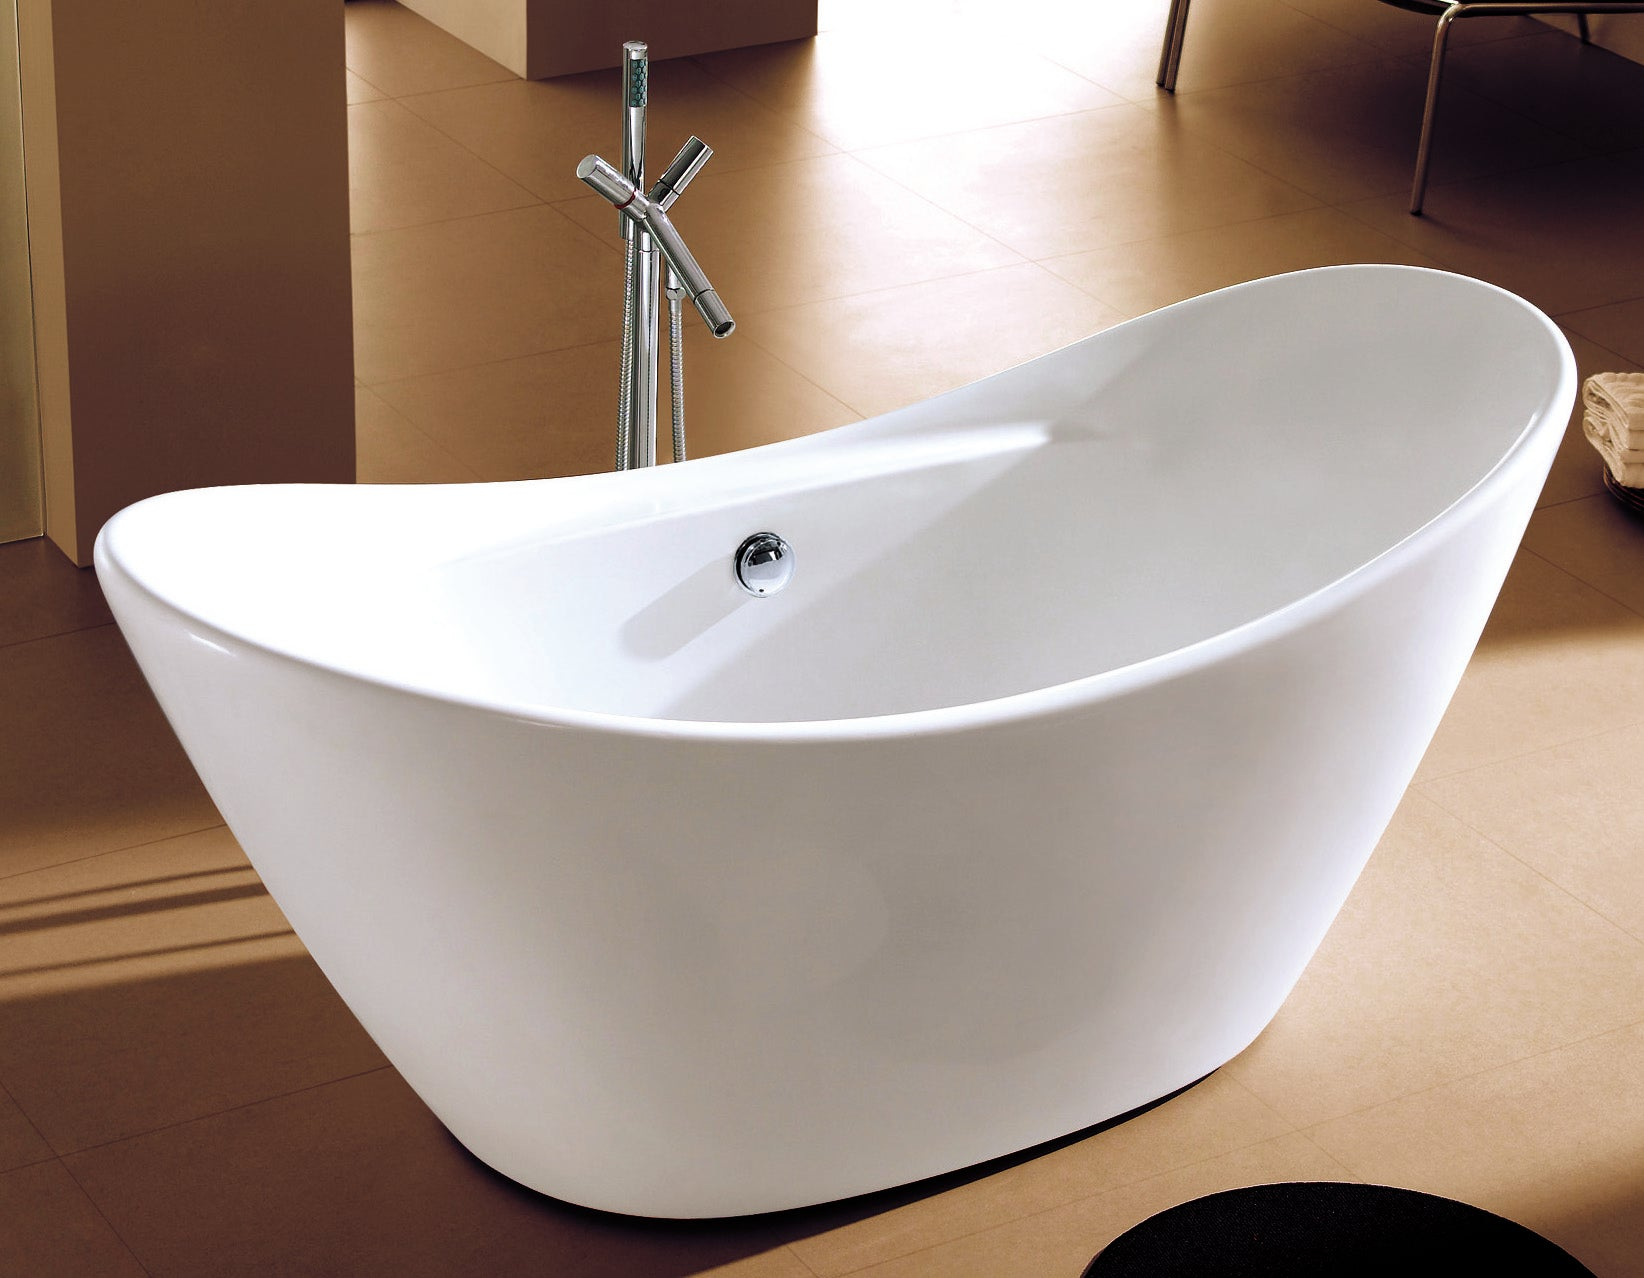 AB8803 - 68 Inch - White Oval Acrylic Free Standing Soaking Bathtub ...